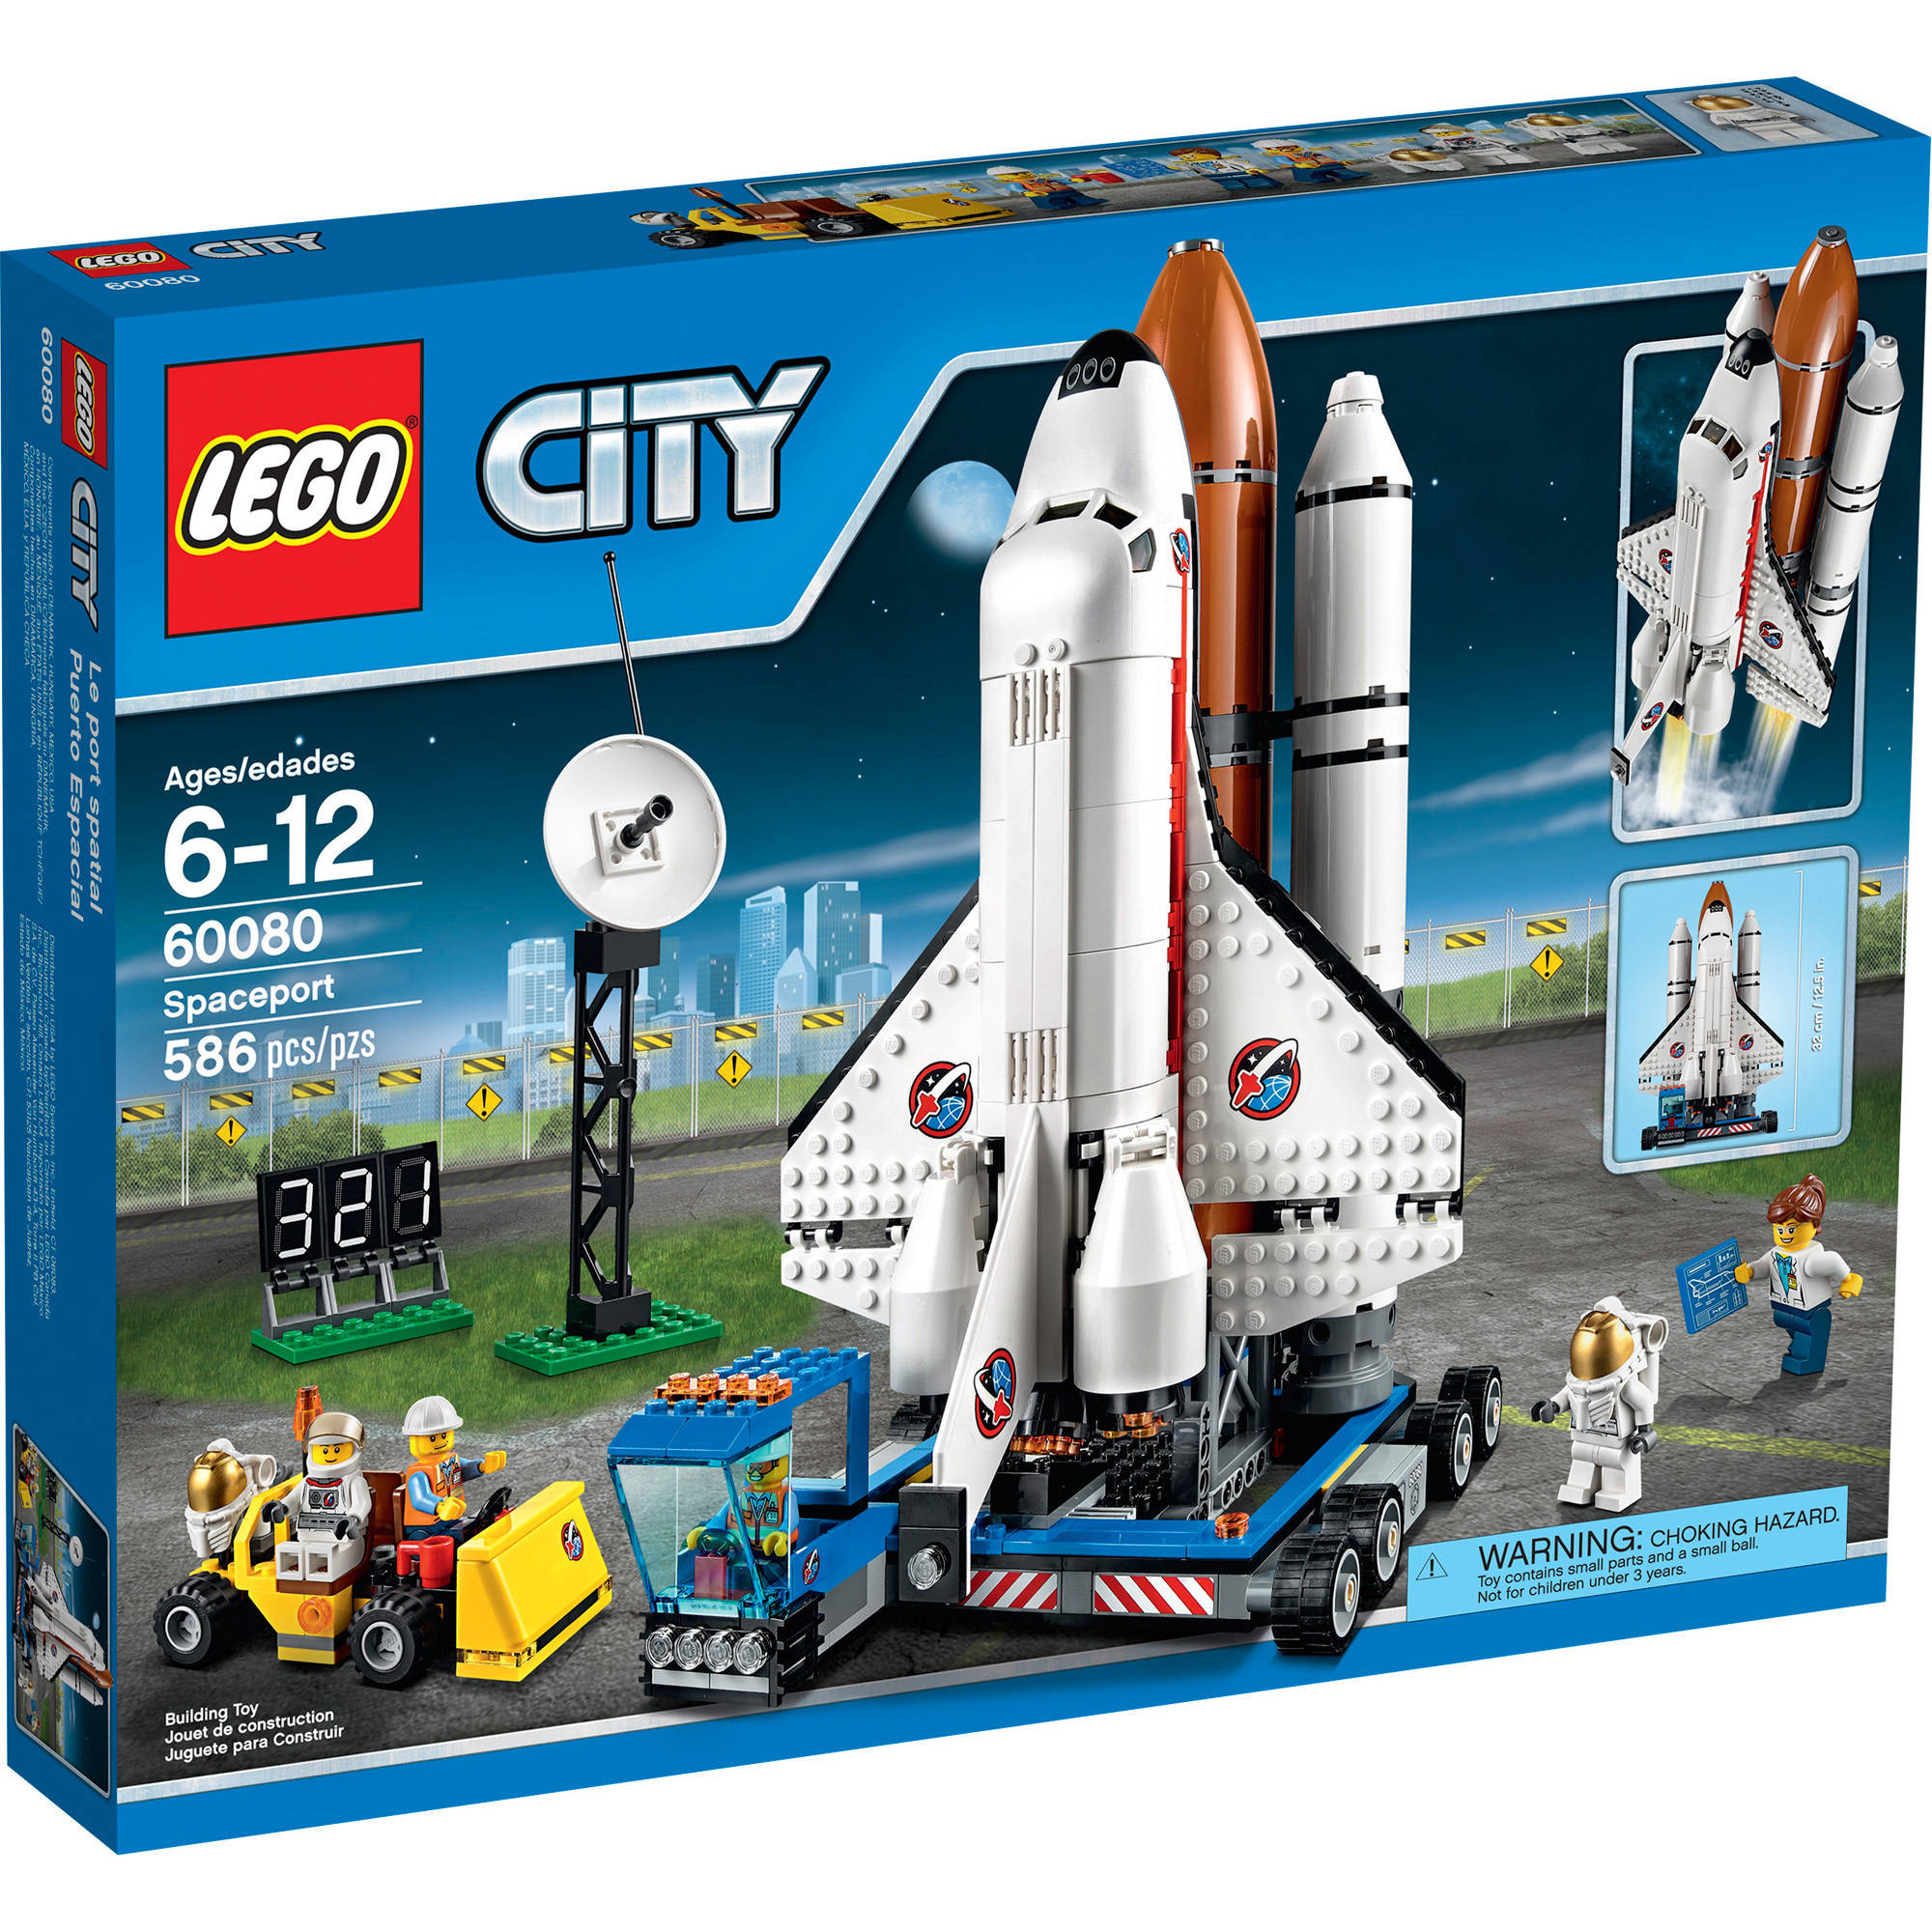 LEGO City Space Port Spaceport, 60080